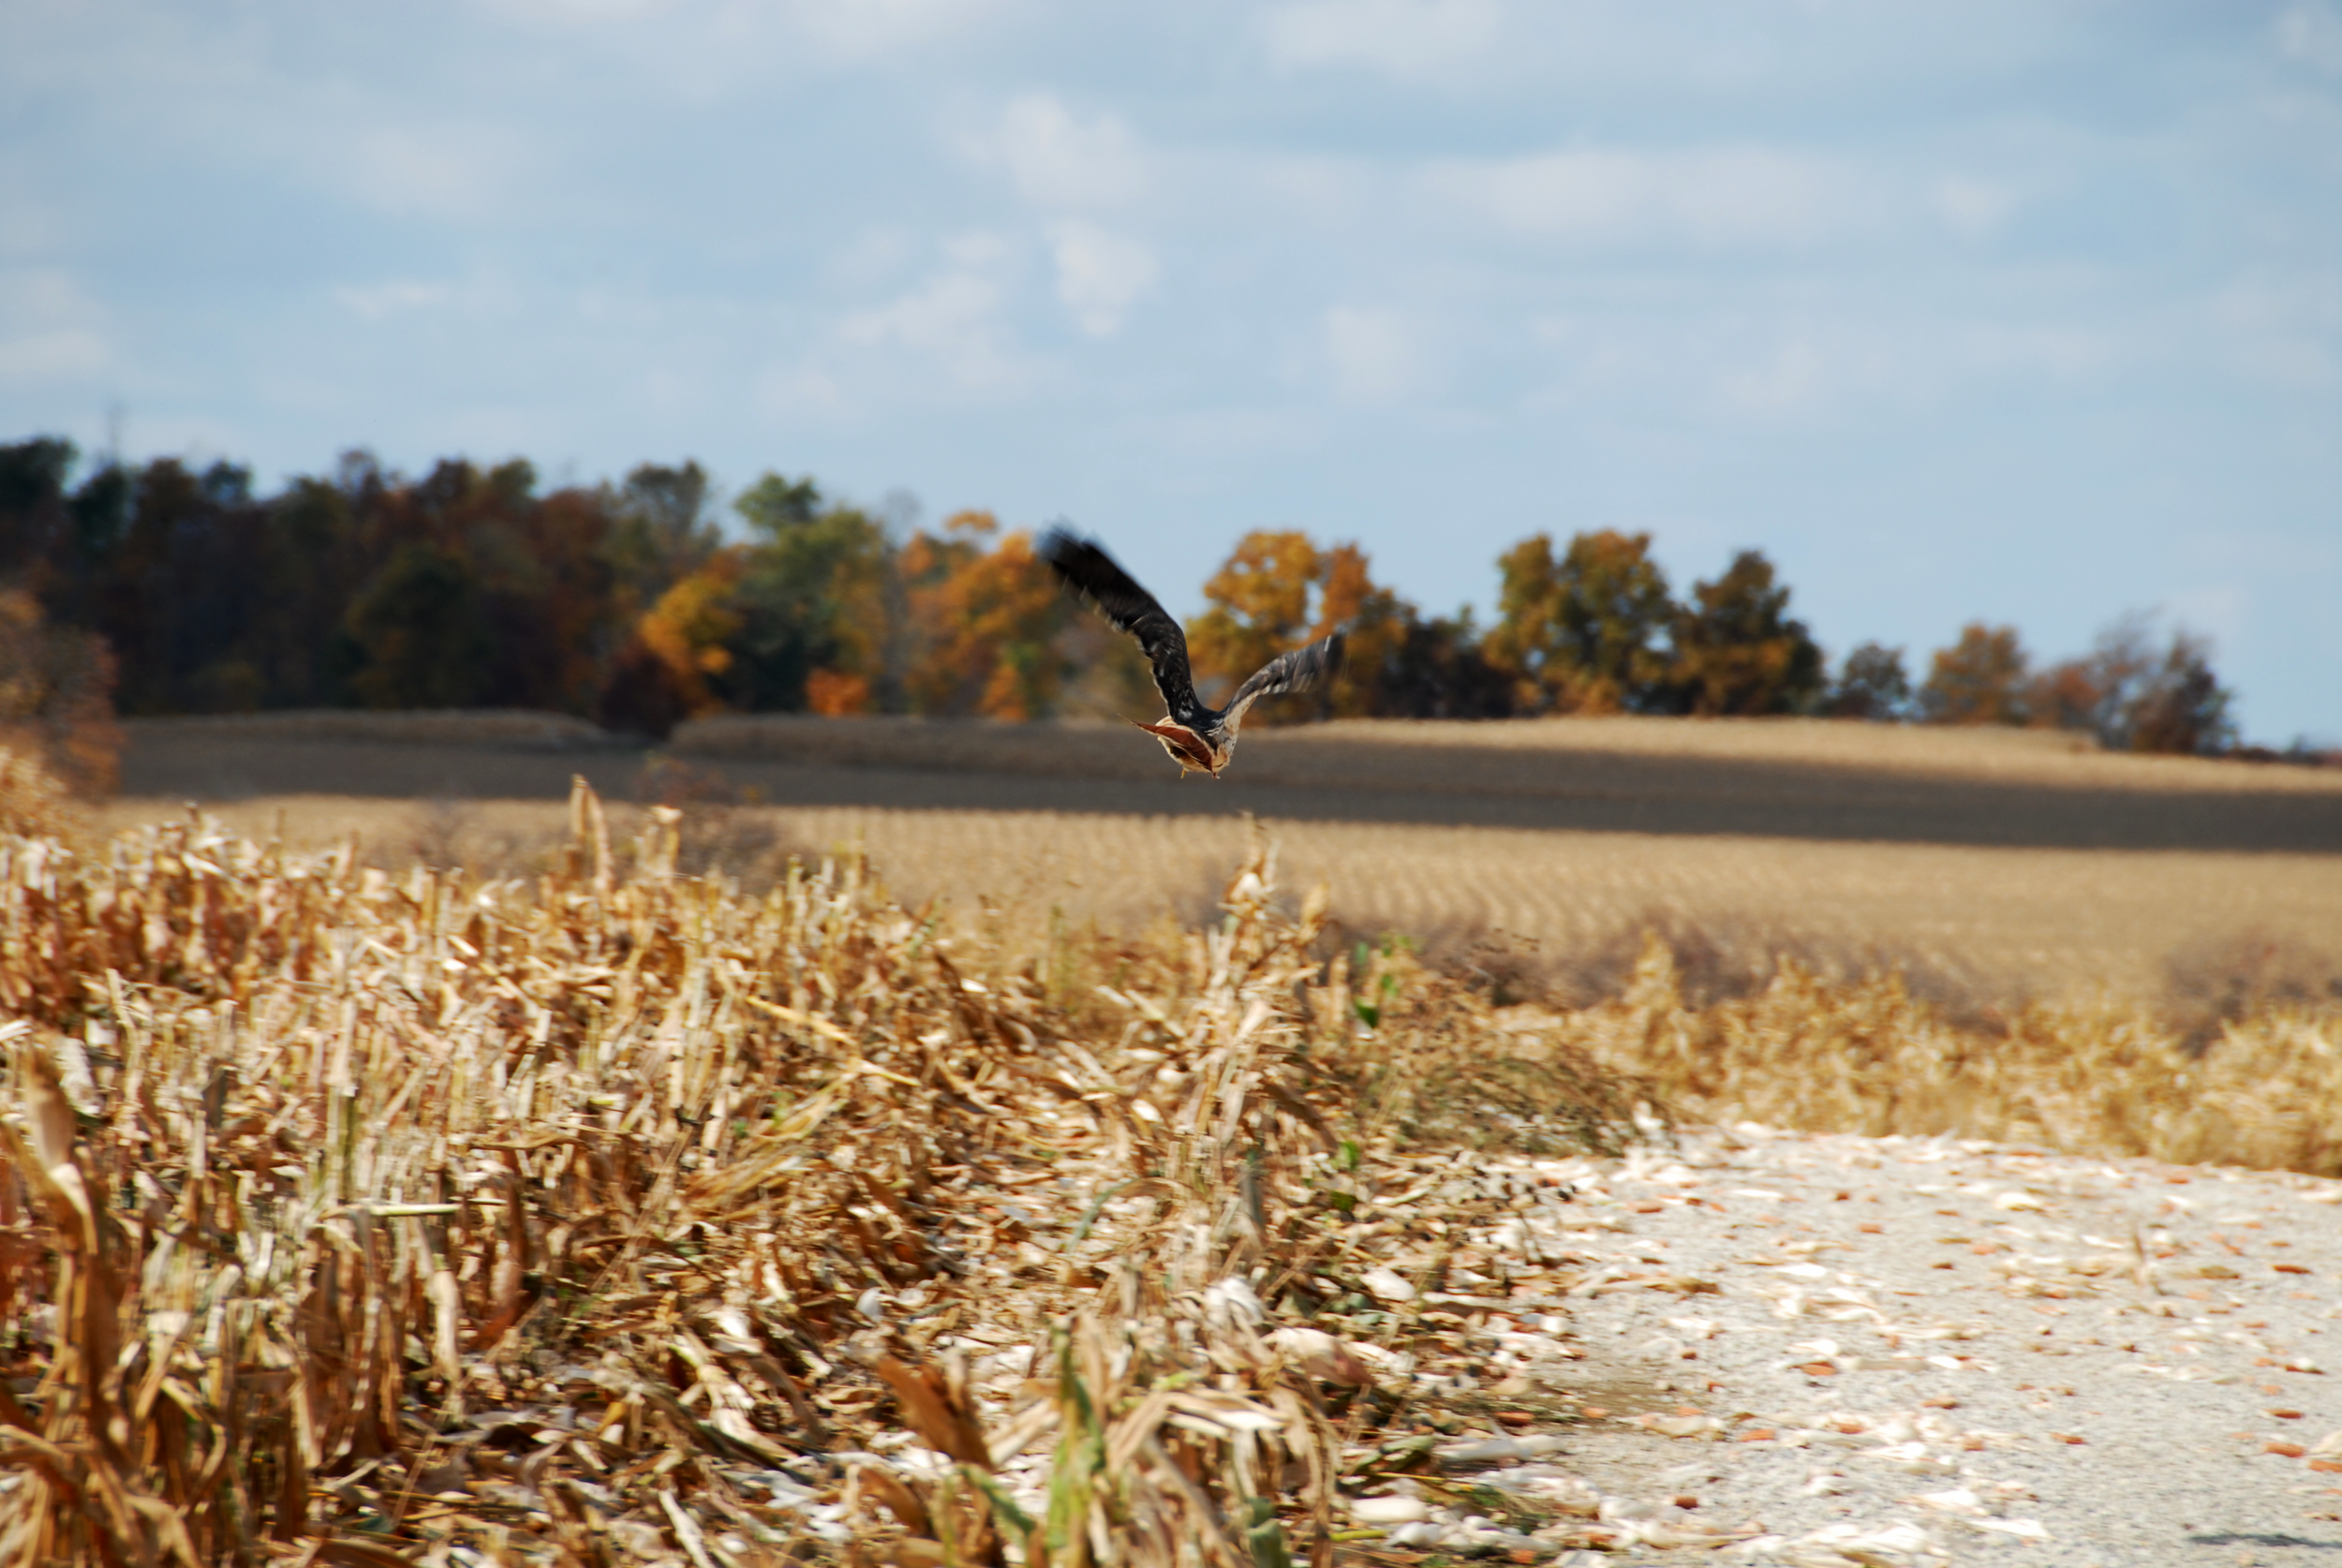 Red-tailed hawk ( Buteo jamaicensis ) flying near the pad of a wind turbine in southeastern Wisconsin, USA. Photo by Tom Underwood.